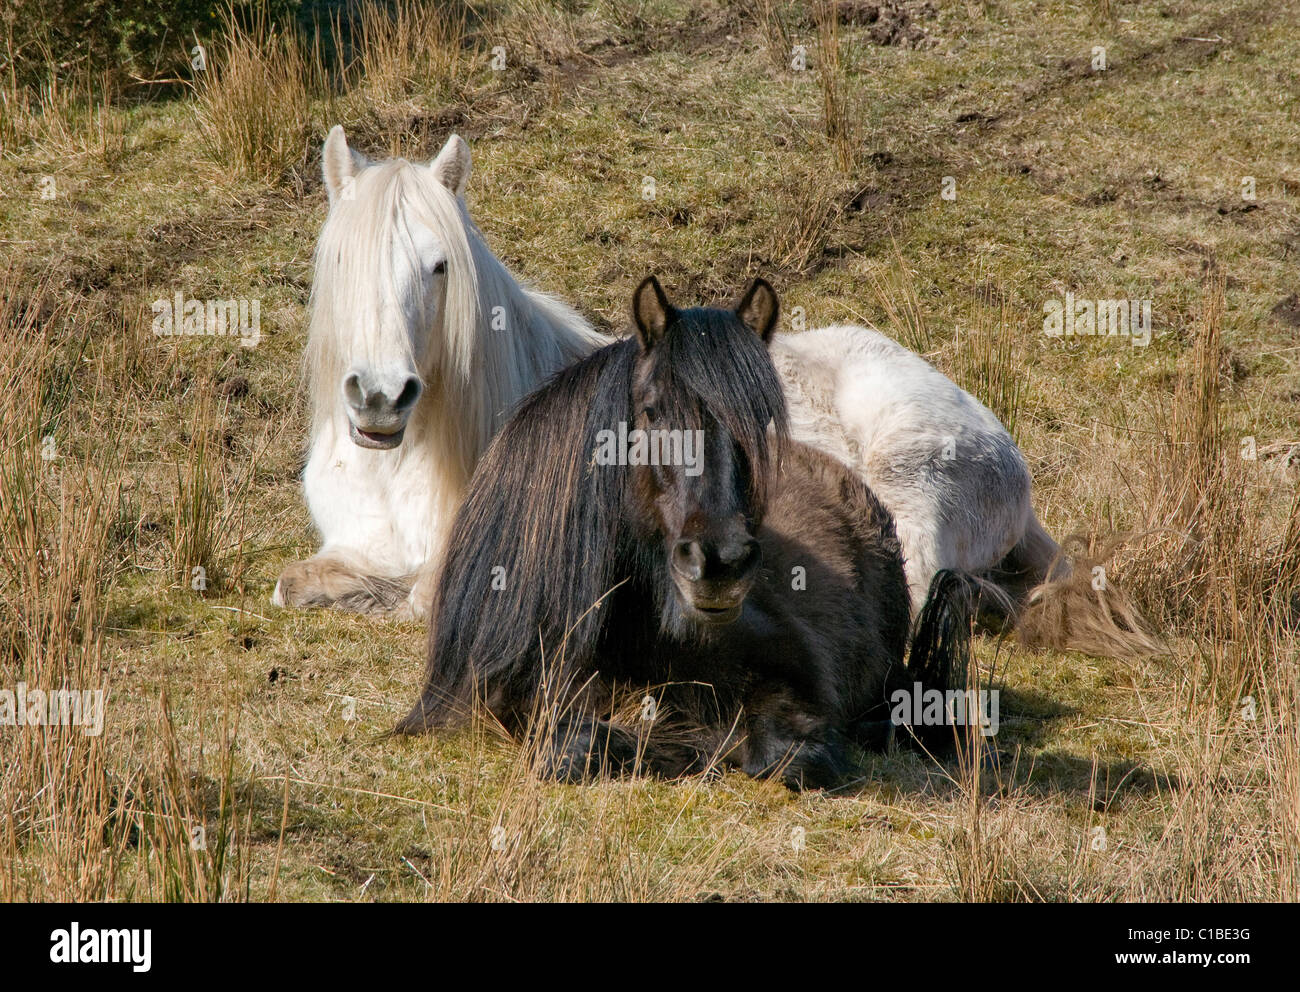 Two Highland Ponies relaxing in field one black one white with long groomed manes - Stock Image